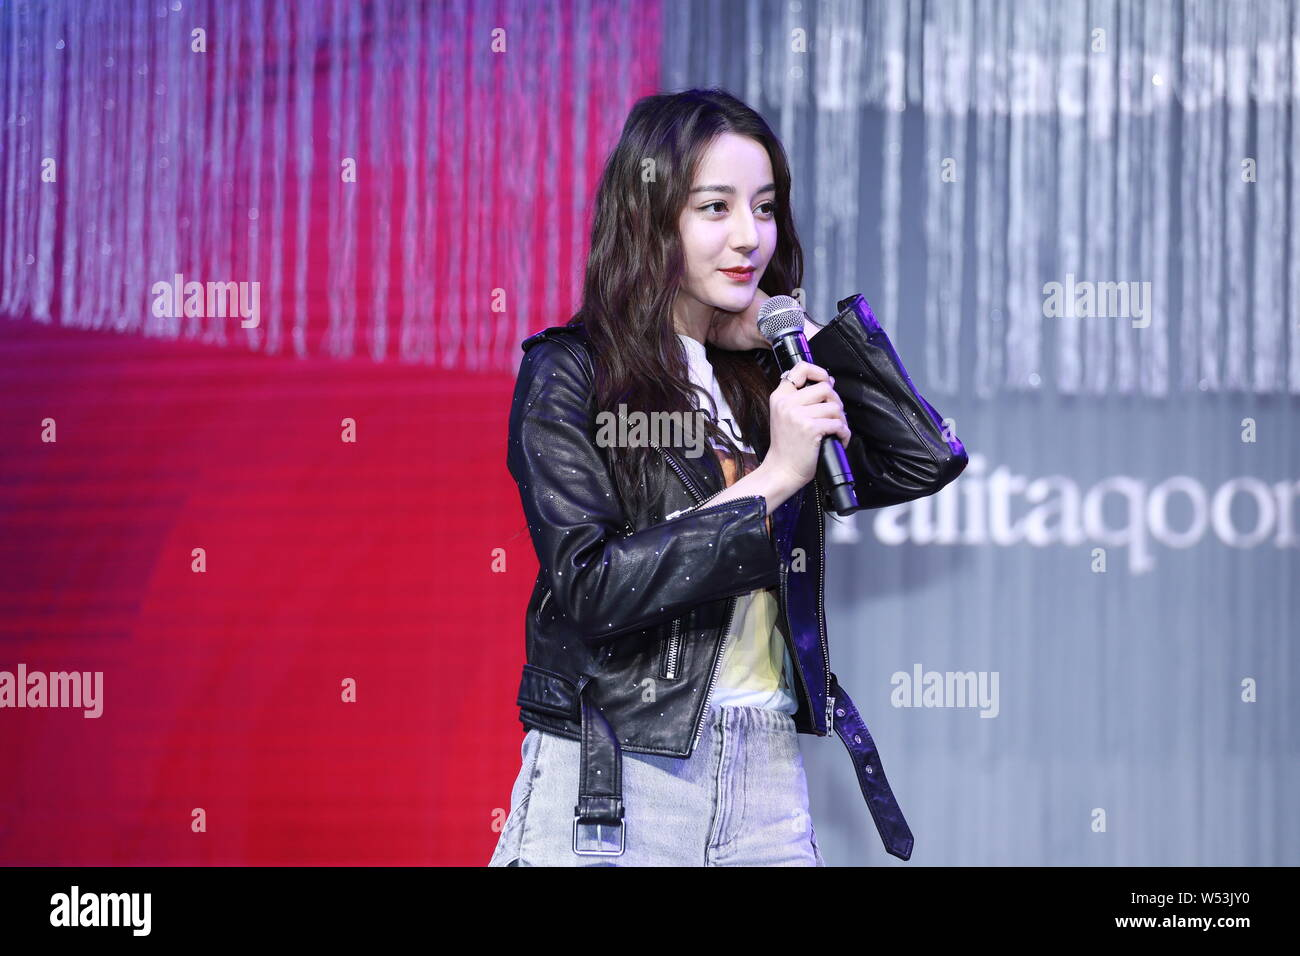 Chinese Uigur actress Dilraba Dilmurat attends the 20th anniversary ceremony for JOSINY in Shanghai, China, 12 January 2019. Stock Photo